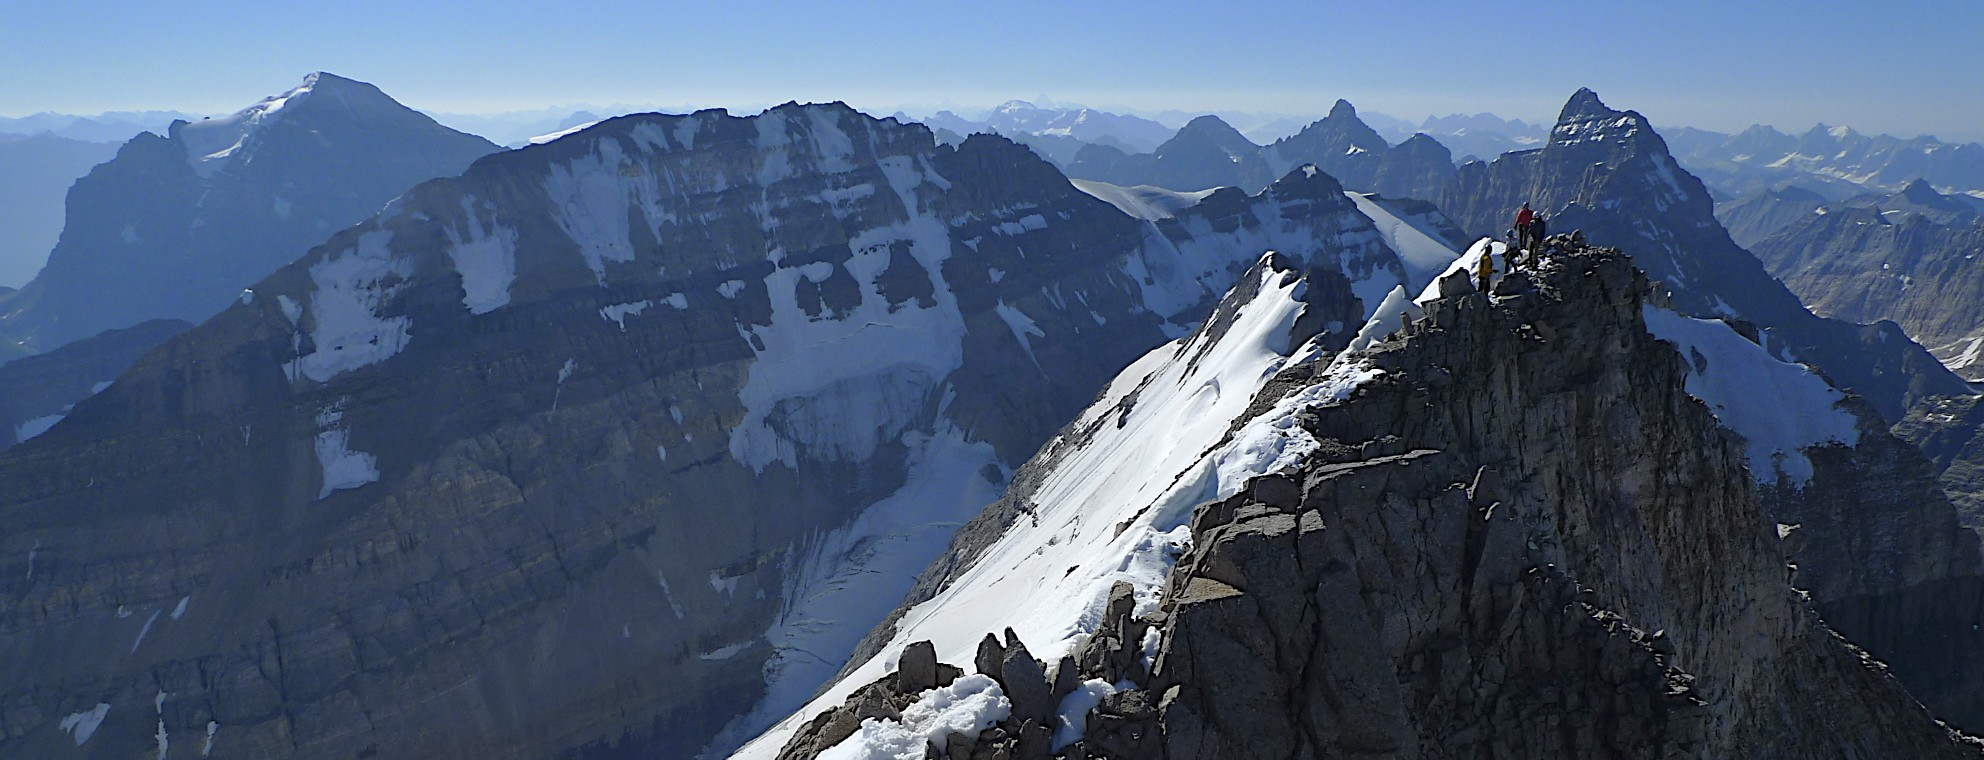 Mt. Temple on the left, Mt. Leroy in the centre and the summit ridge of Mt. Victoria